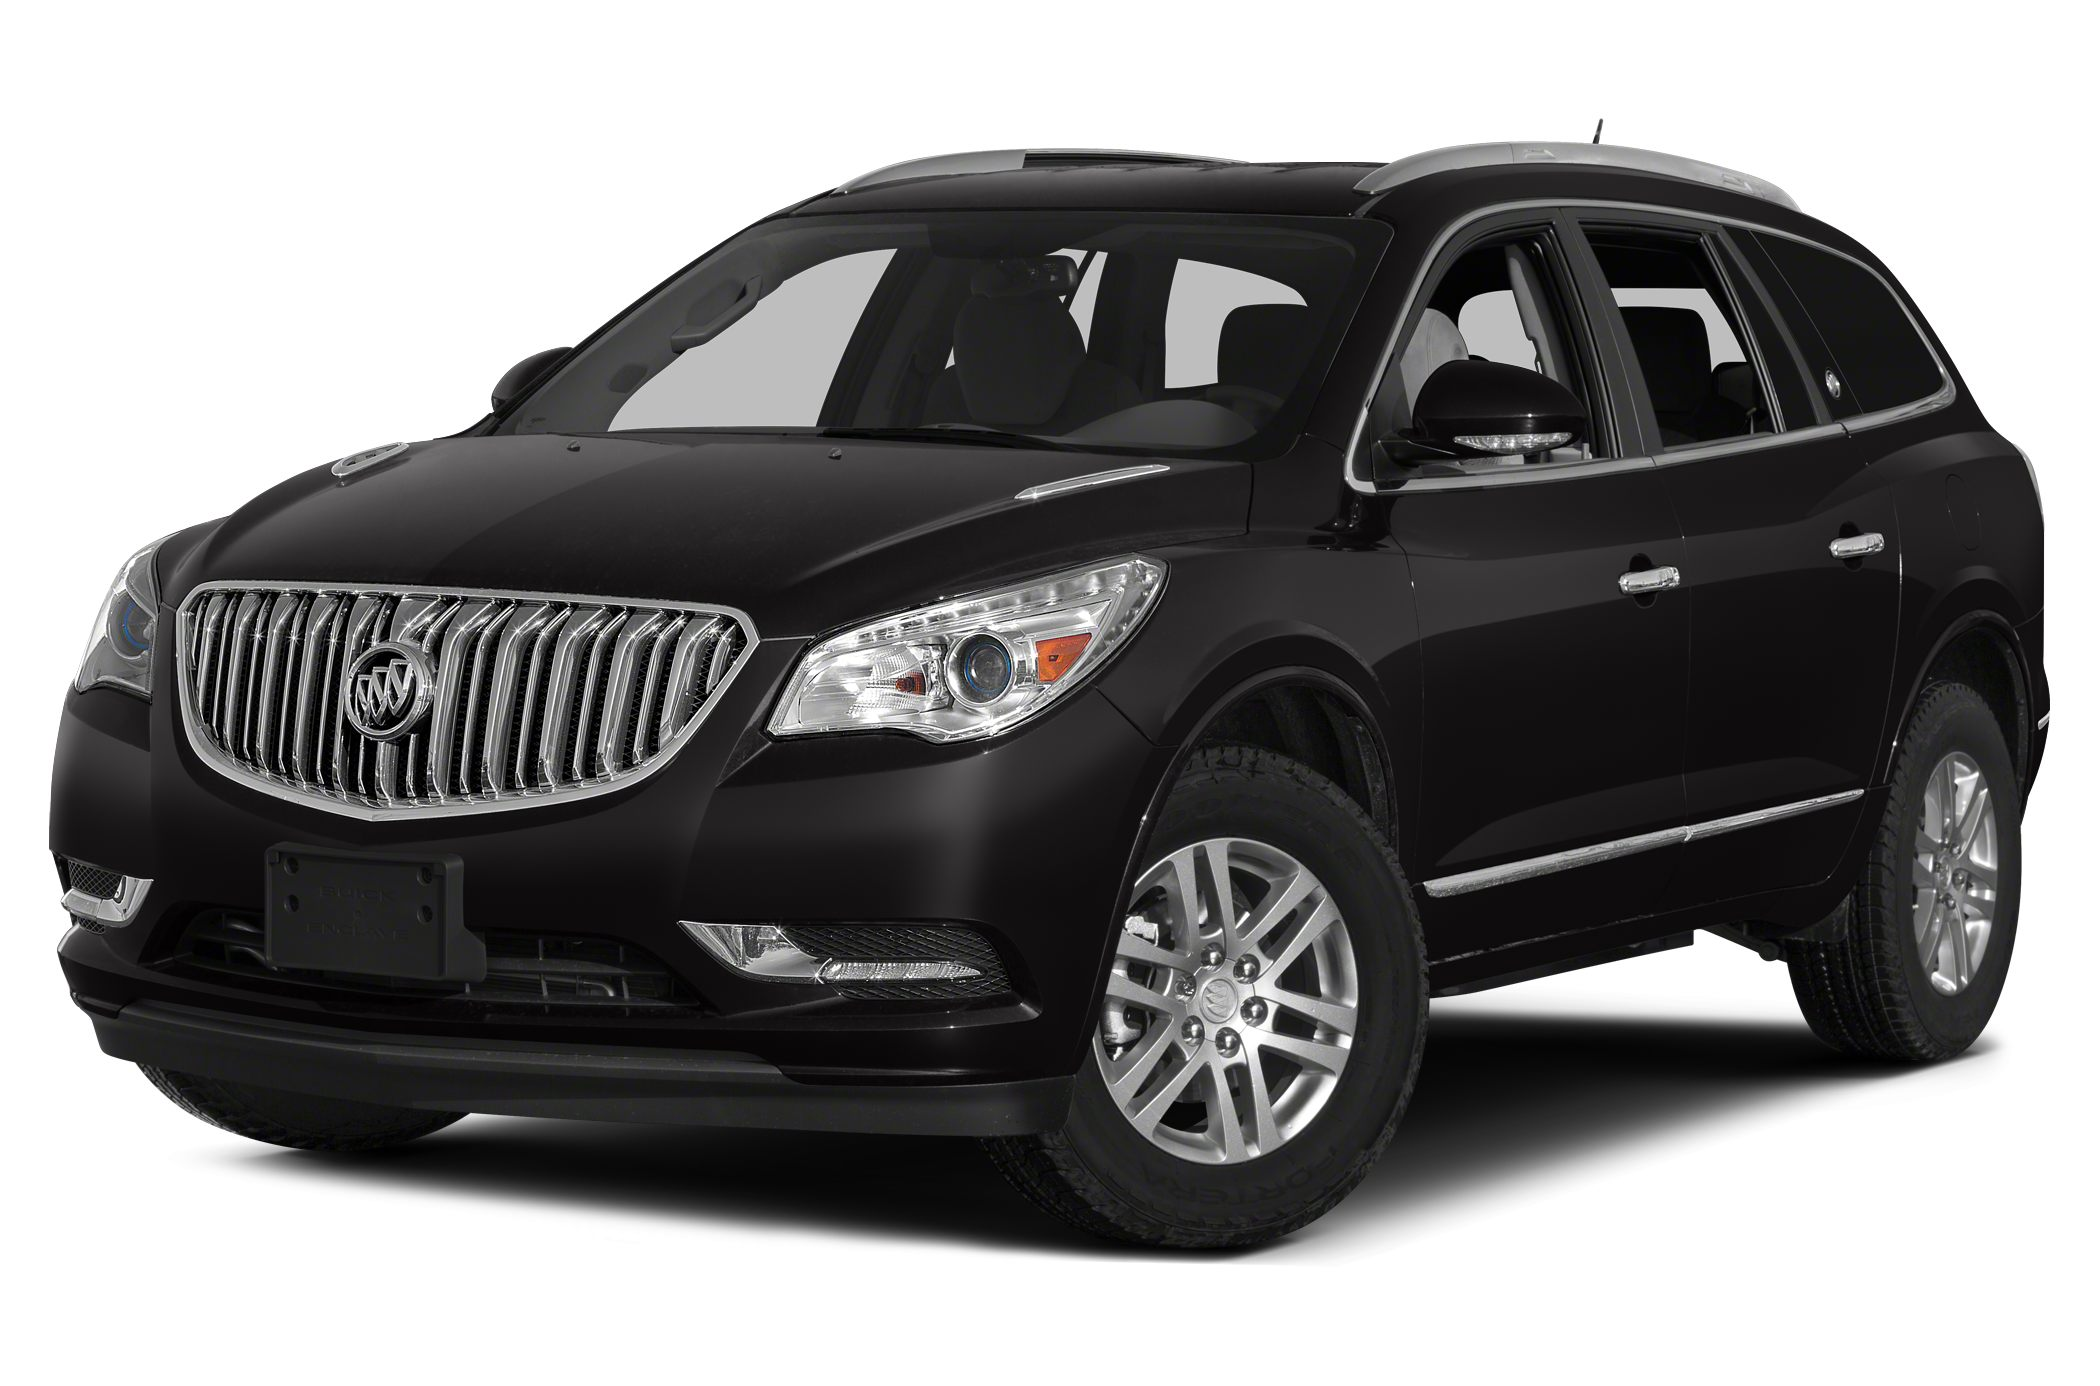 2015 Buick Enclave Leather SUV for sale in Parkersburg for $38,850 with 22,123 miles